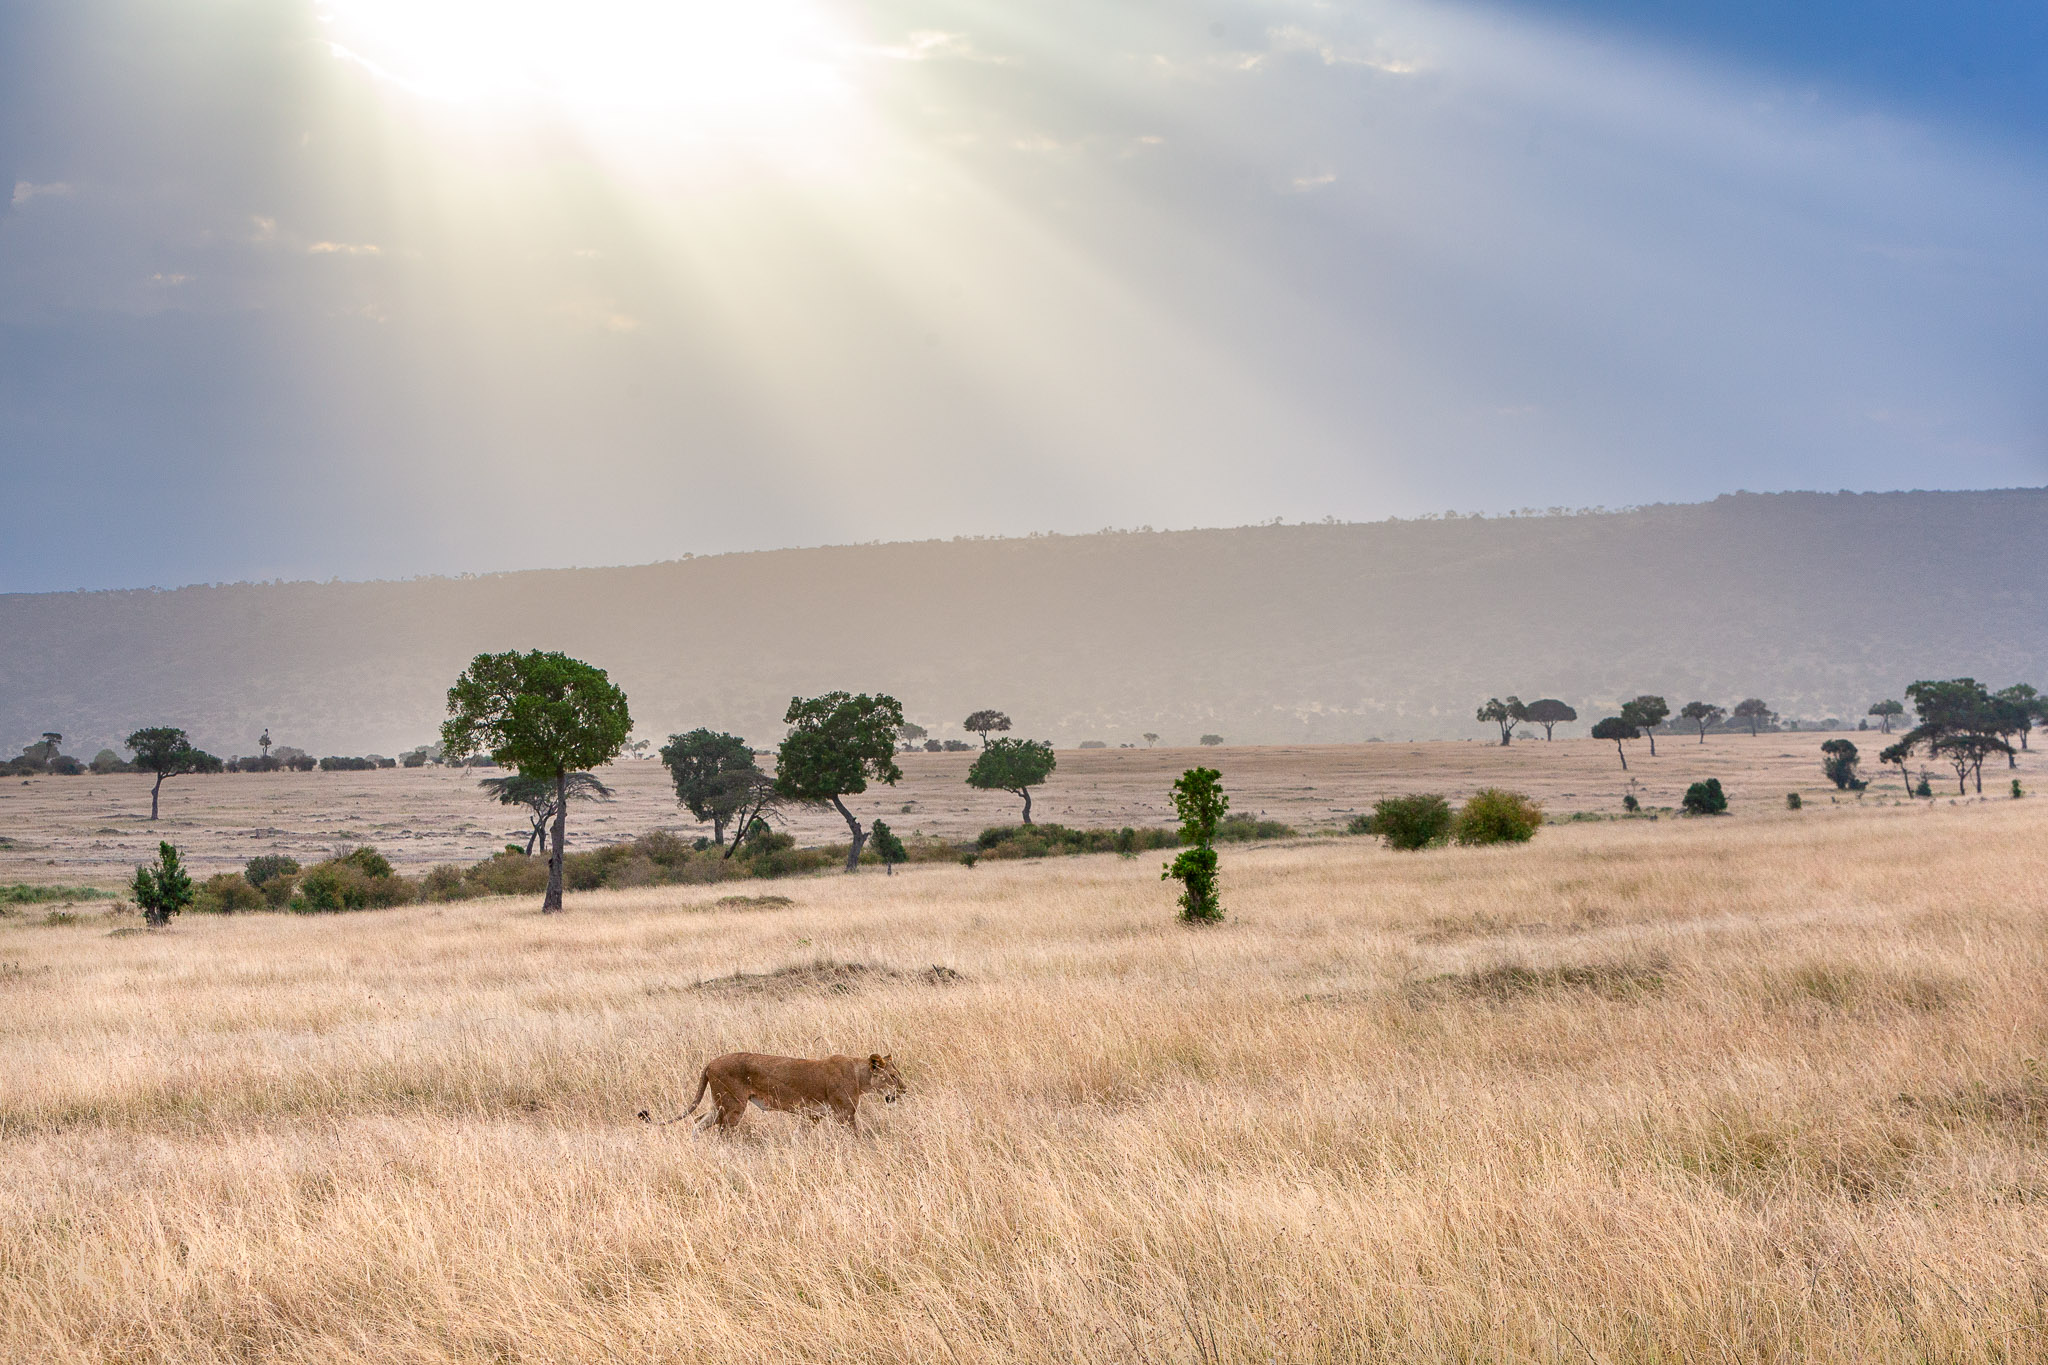 Lioness walking in the Masai Mara